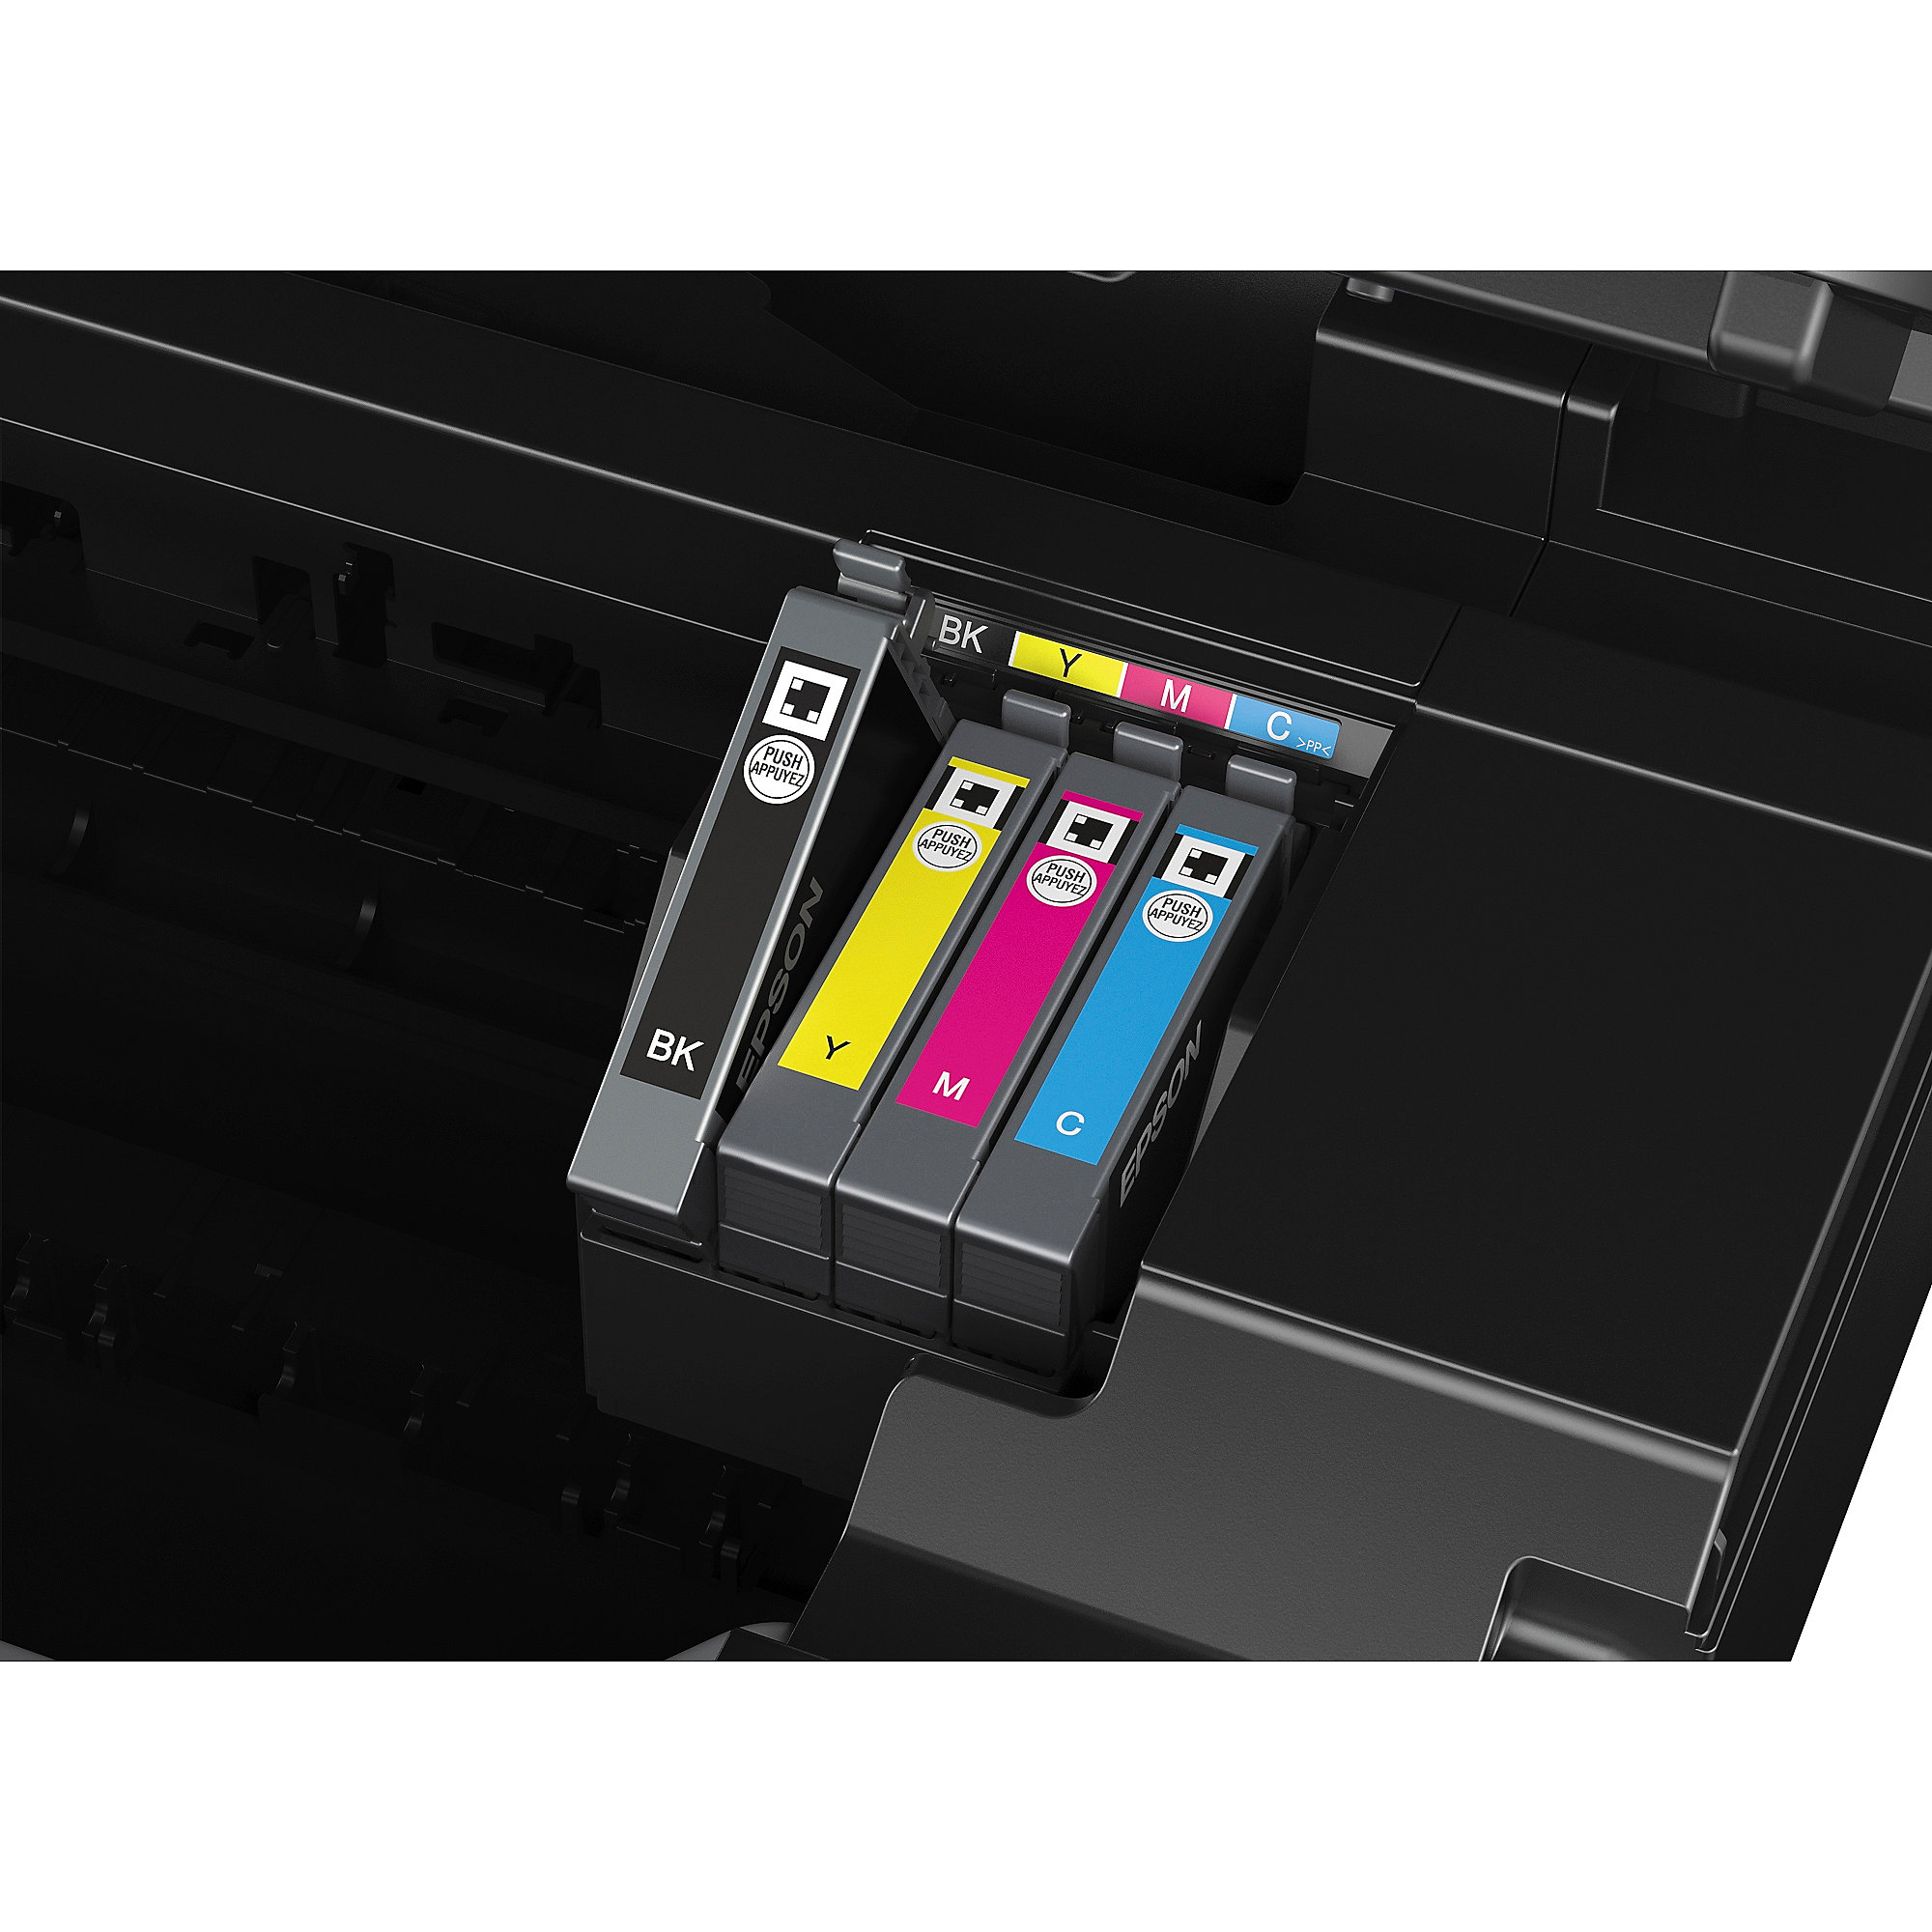 EPSON Expression Home XP-442 Multifunktionsdrucker Scanner Kopierer WLAN